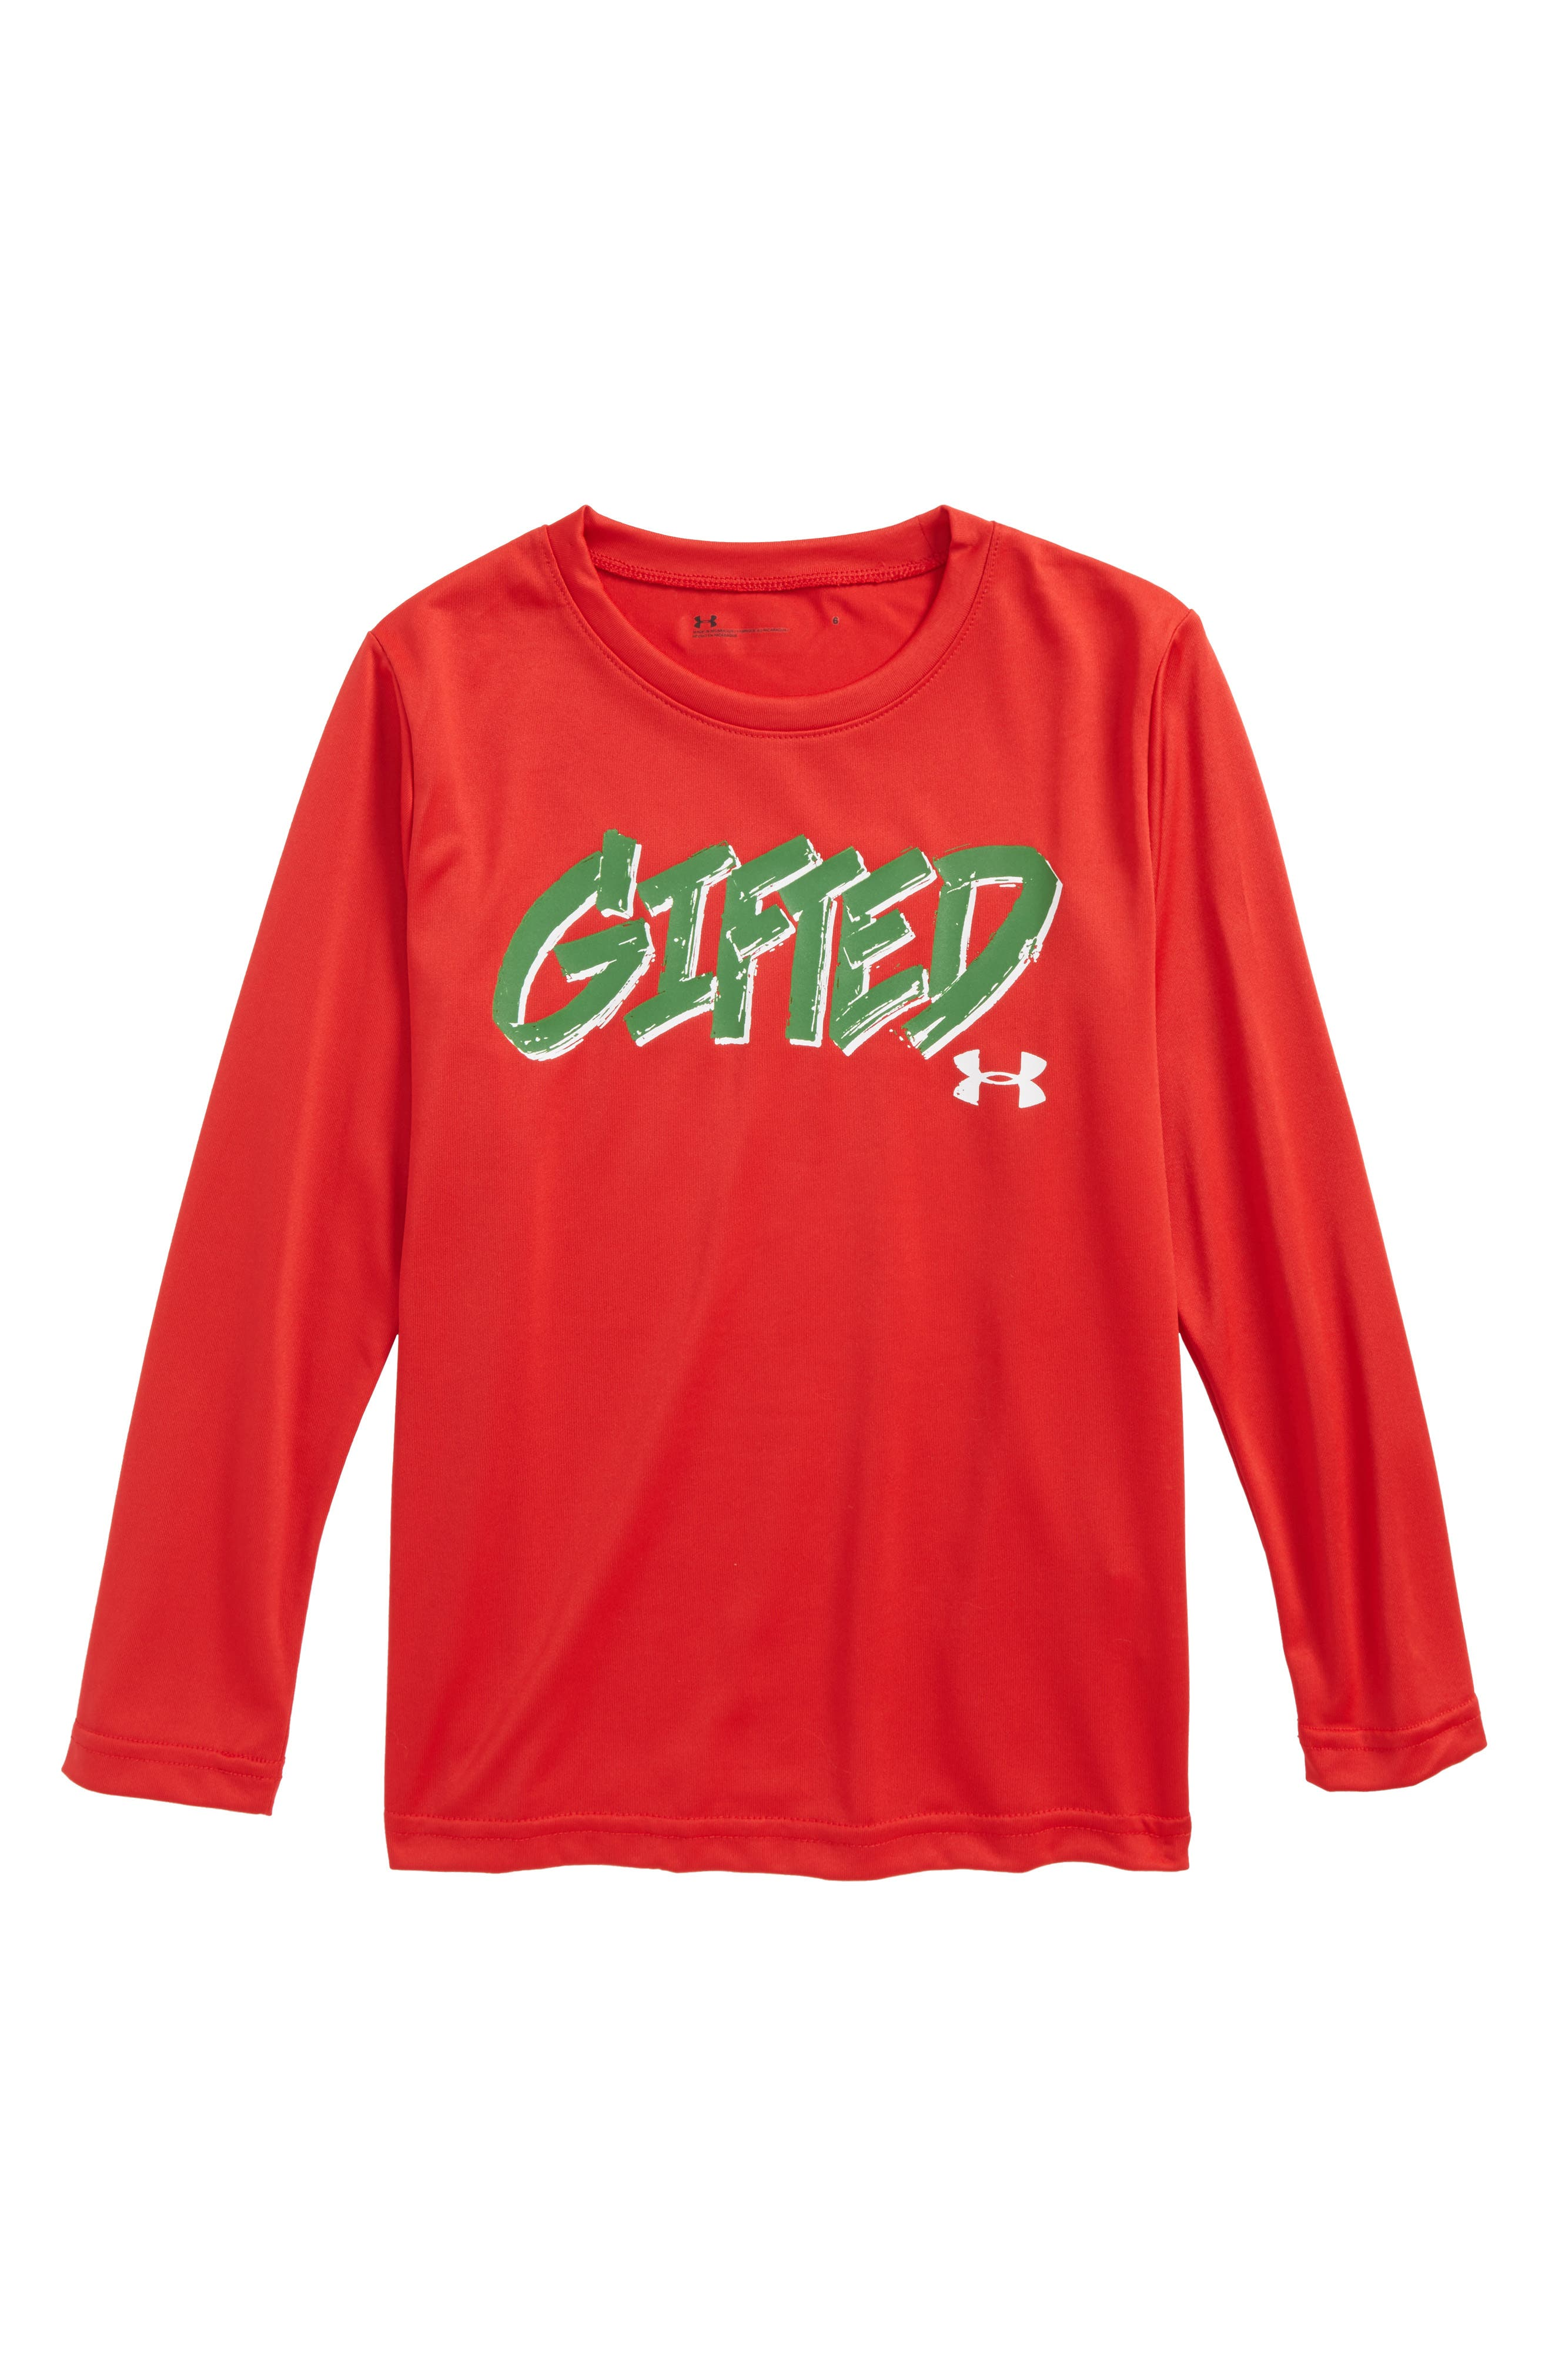 Gifted T-Shirt,                         Main,                         color, Red